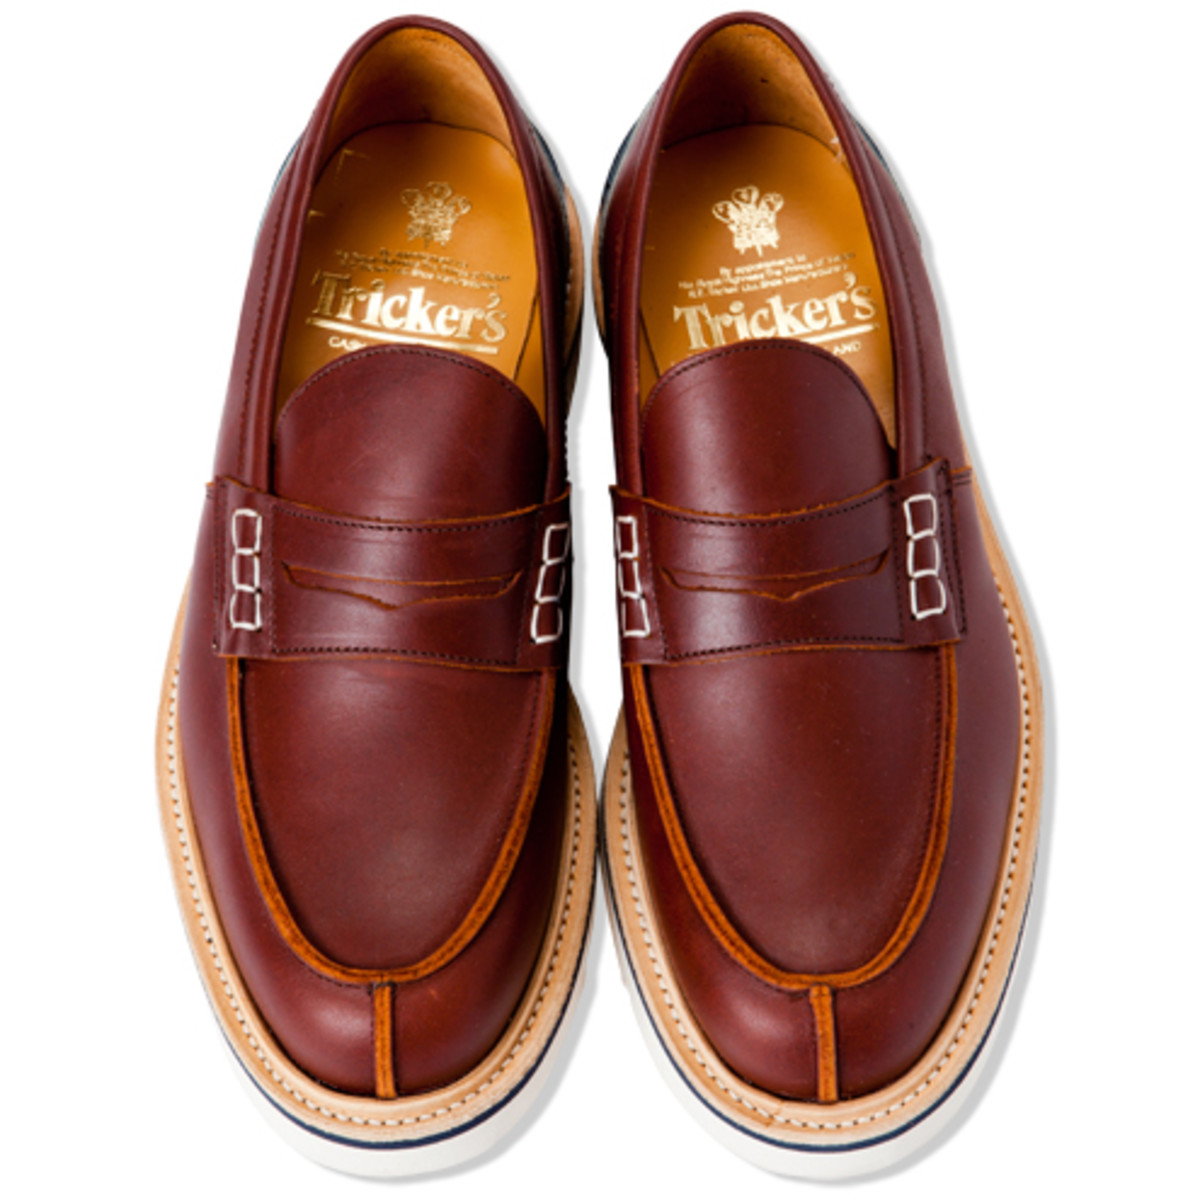 cash-ca-trickers-2013-spring-summer-8